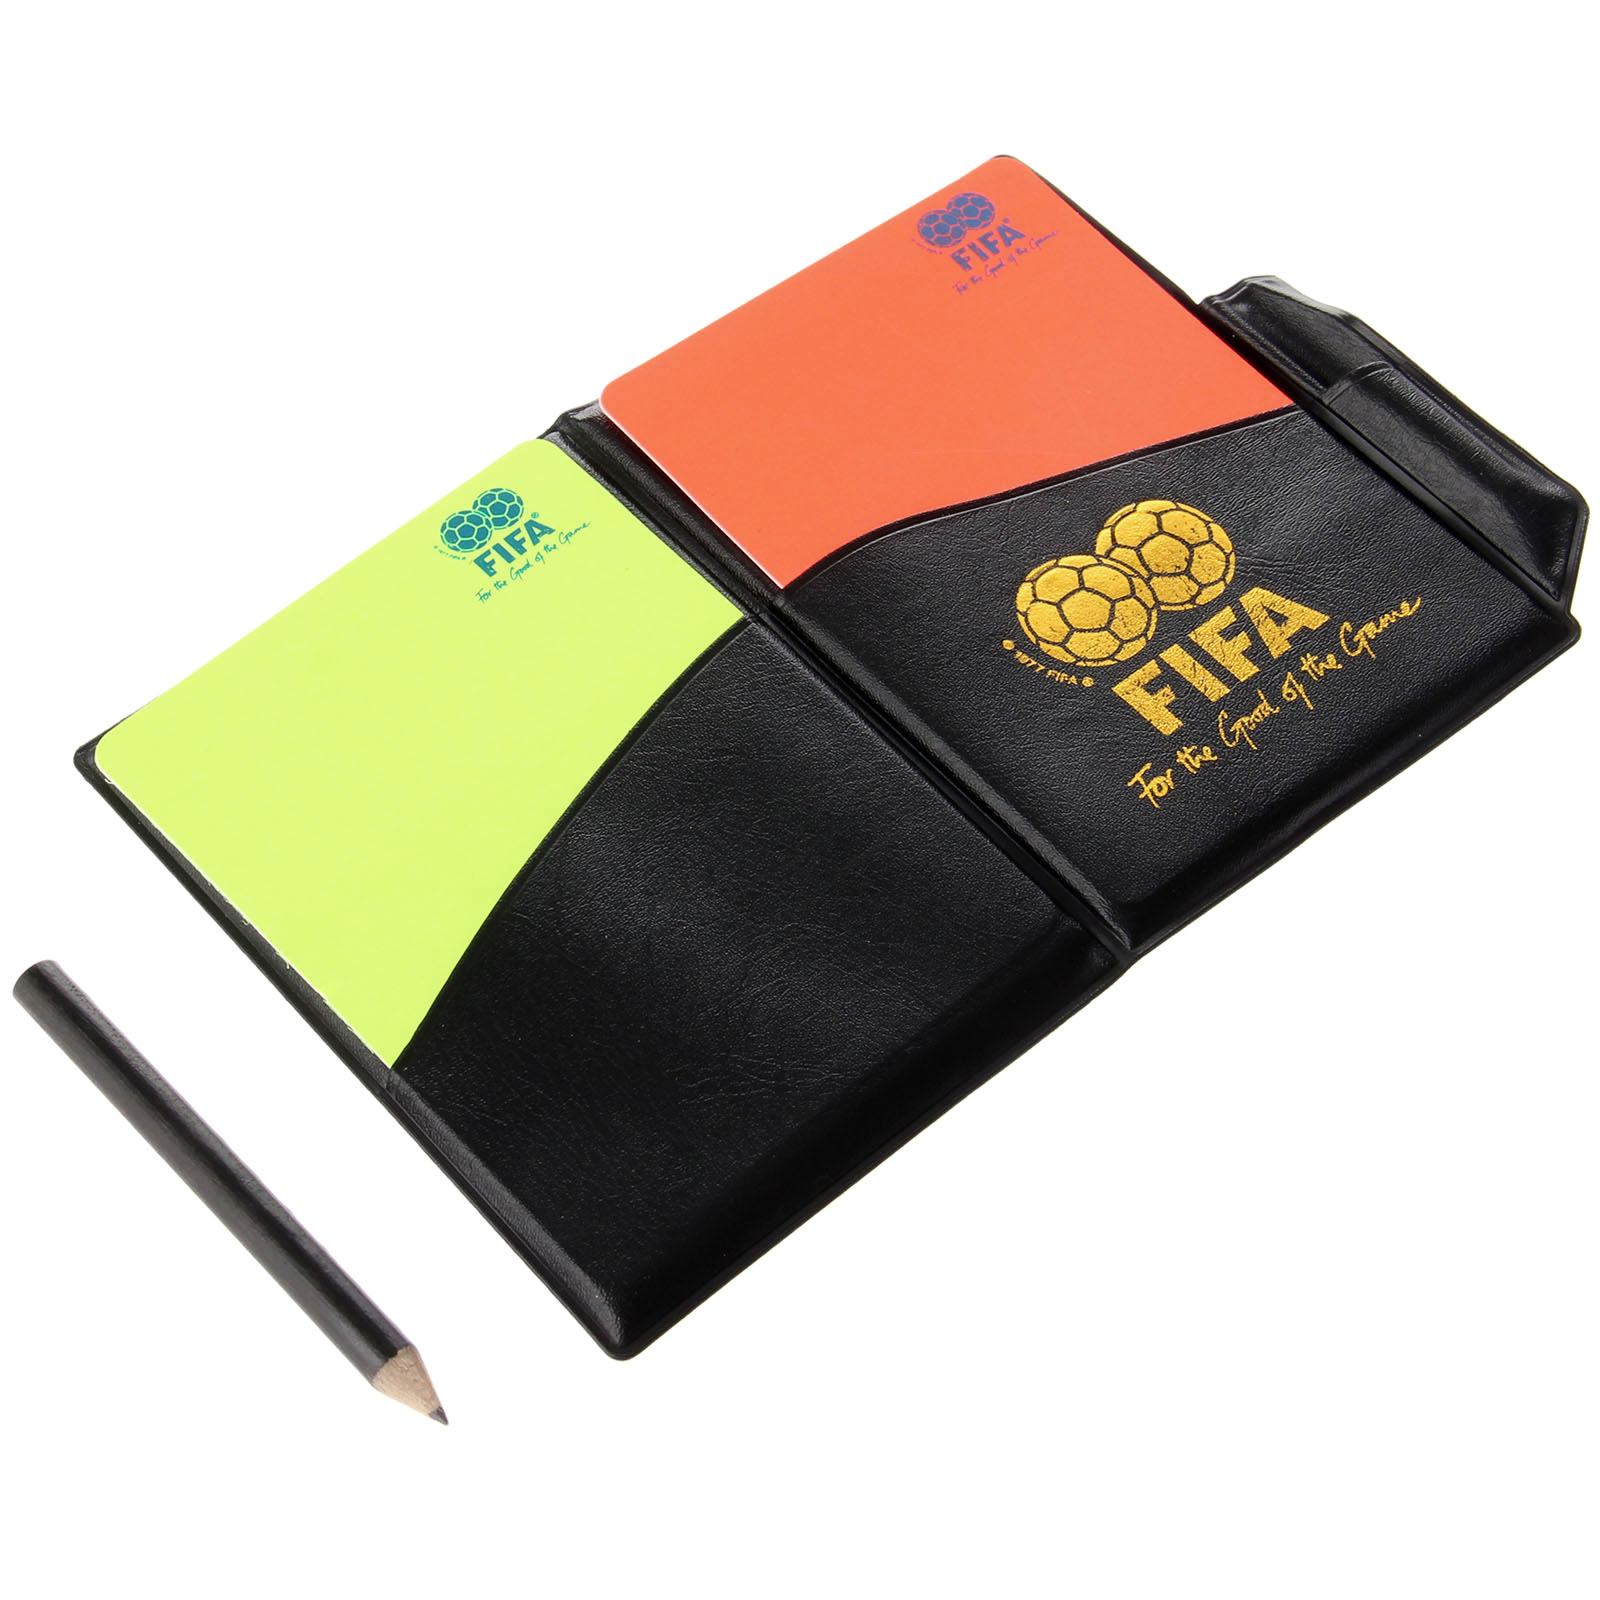 1PC Soccer Referee Supplies Red Card/ Yellow Card Referee Game Appliances With Holster+Pen Football Equipment Pencil Wallet 2017(China (Mainland))